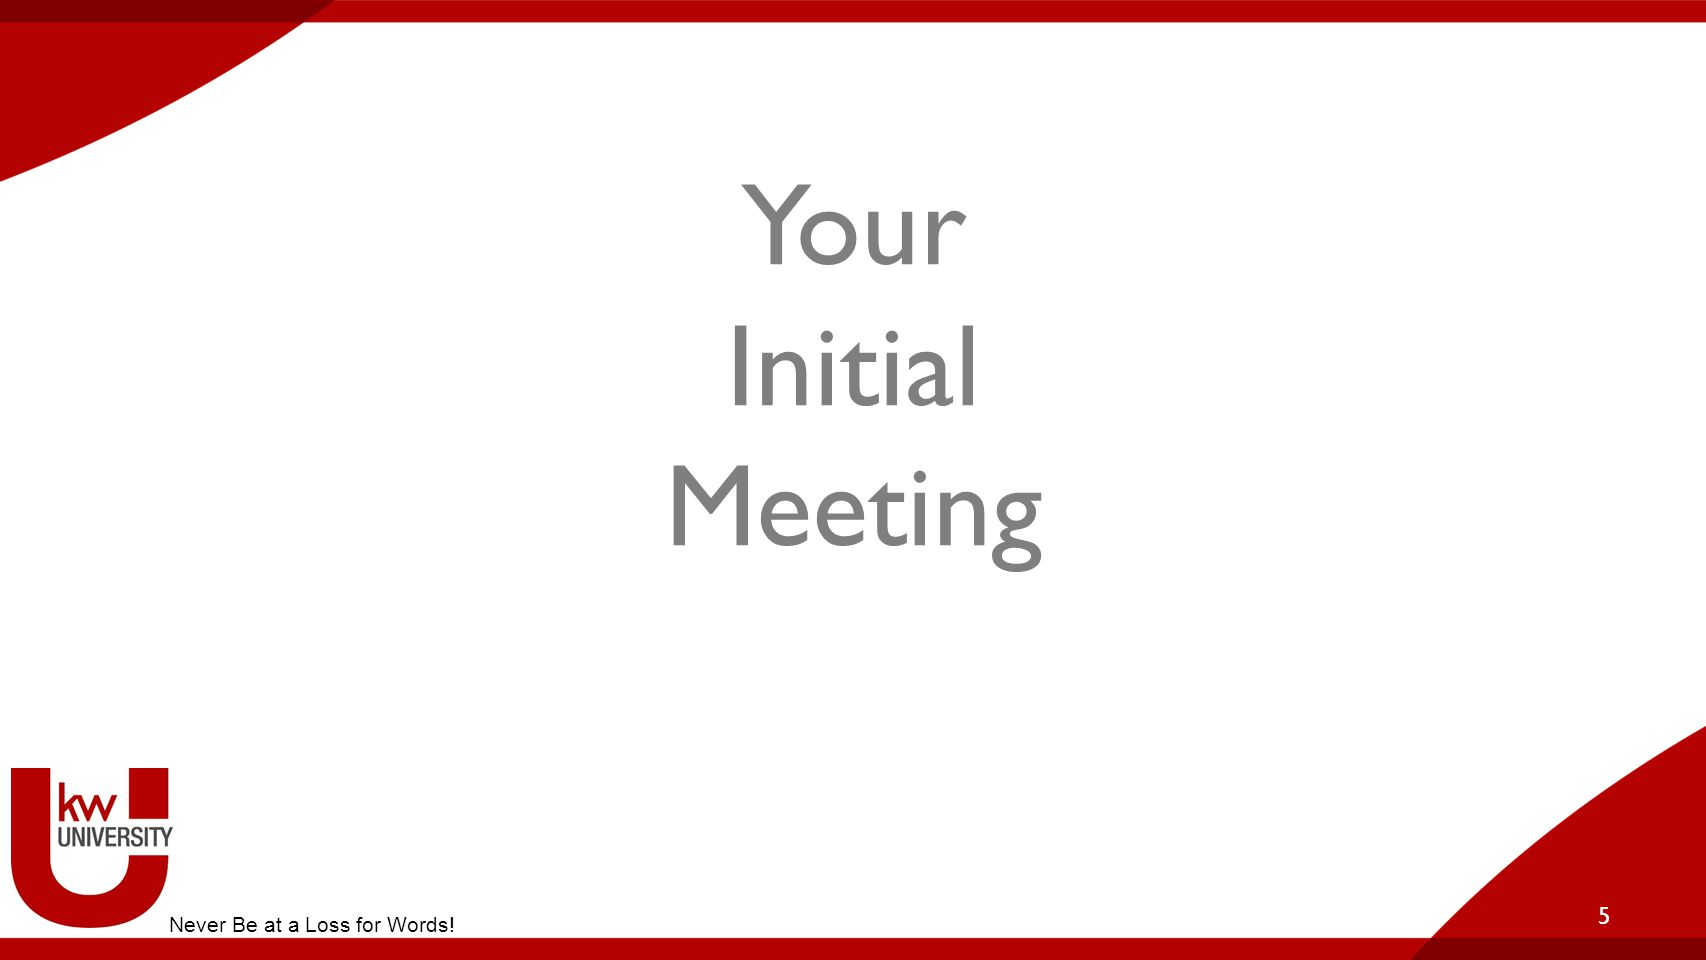 Your Initial Meeting Never Be at a Loss for Words! Title of Breakout